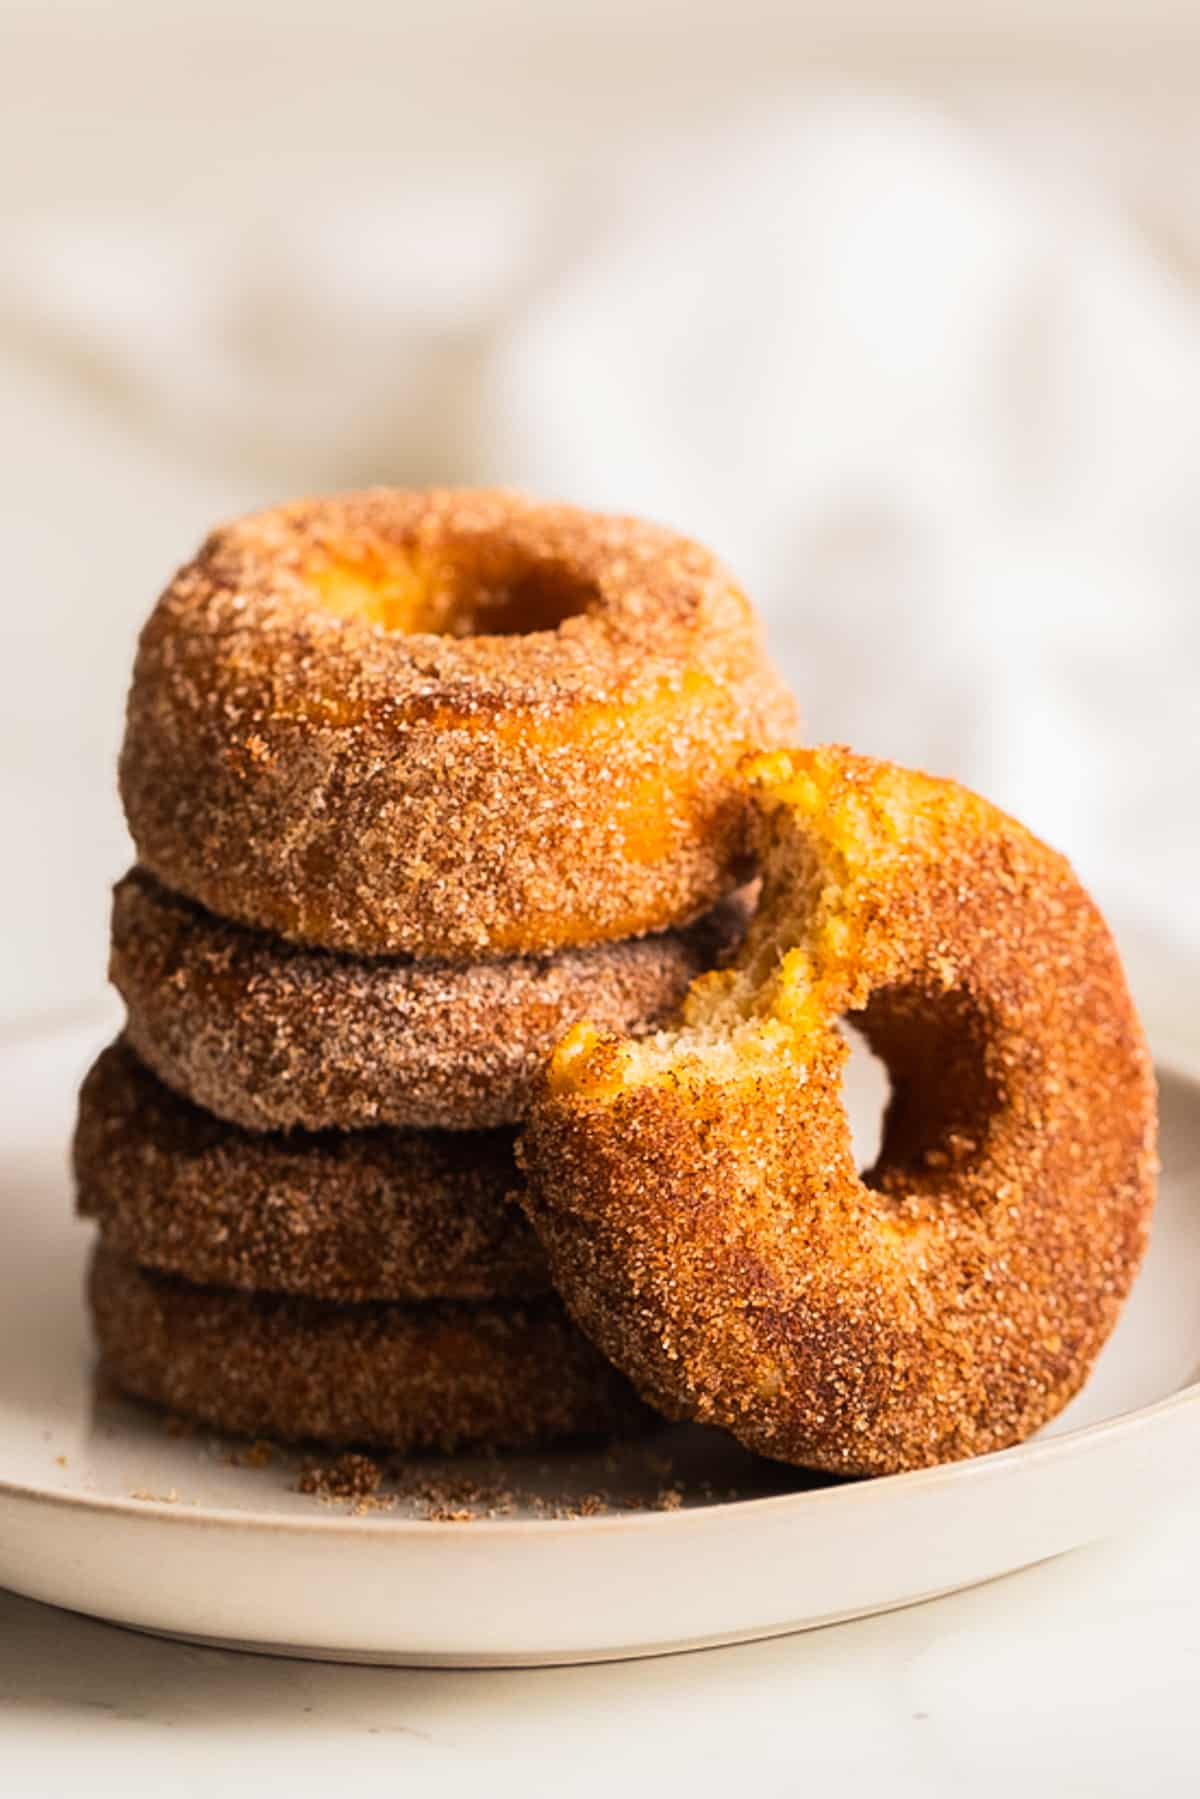 a stack of vegan donuts on a white plate